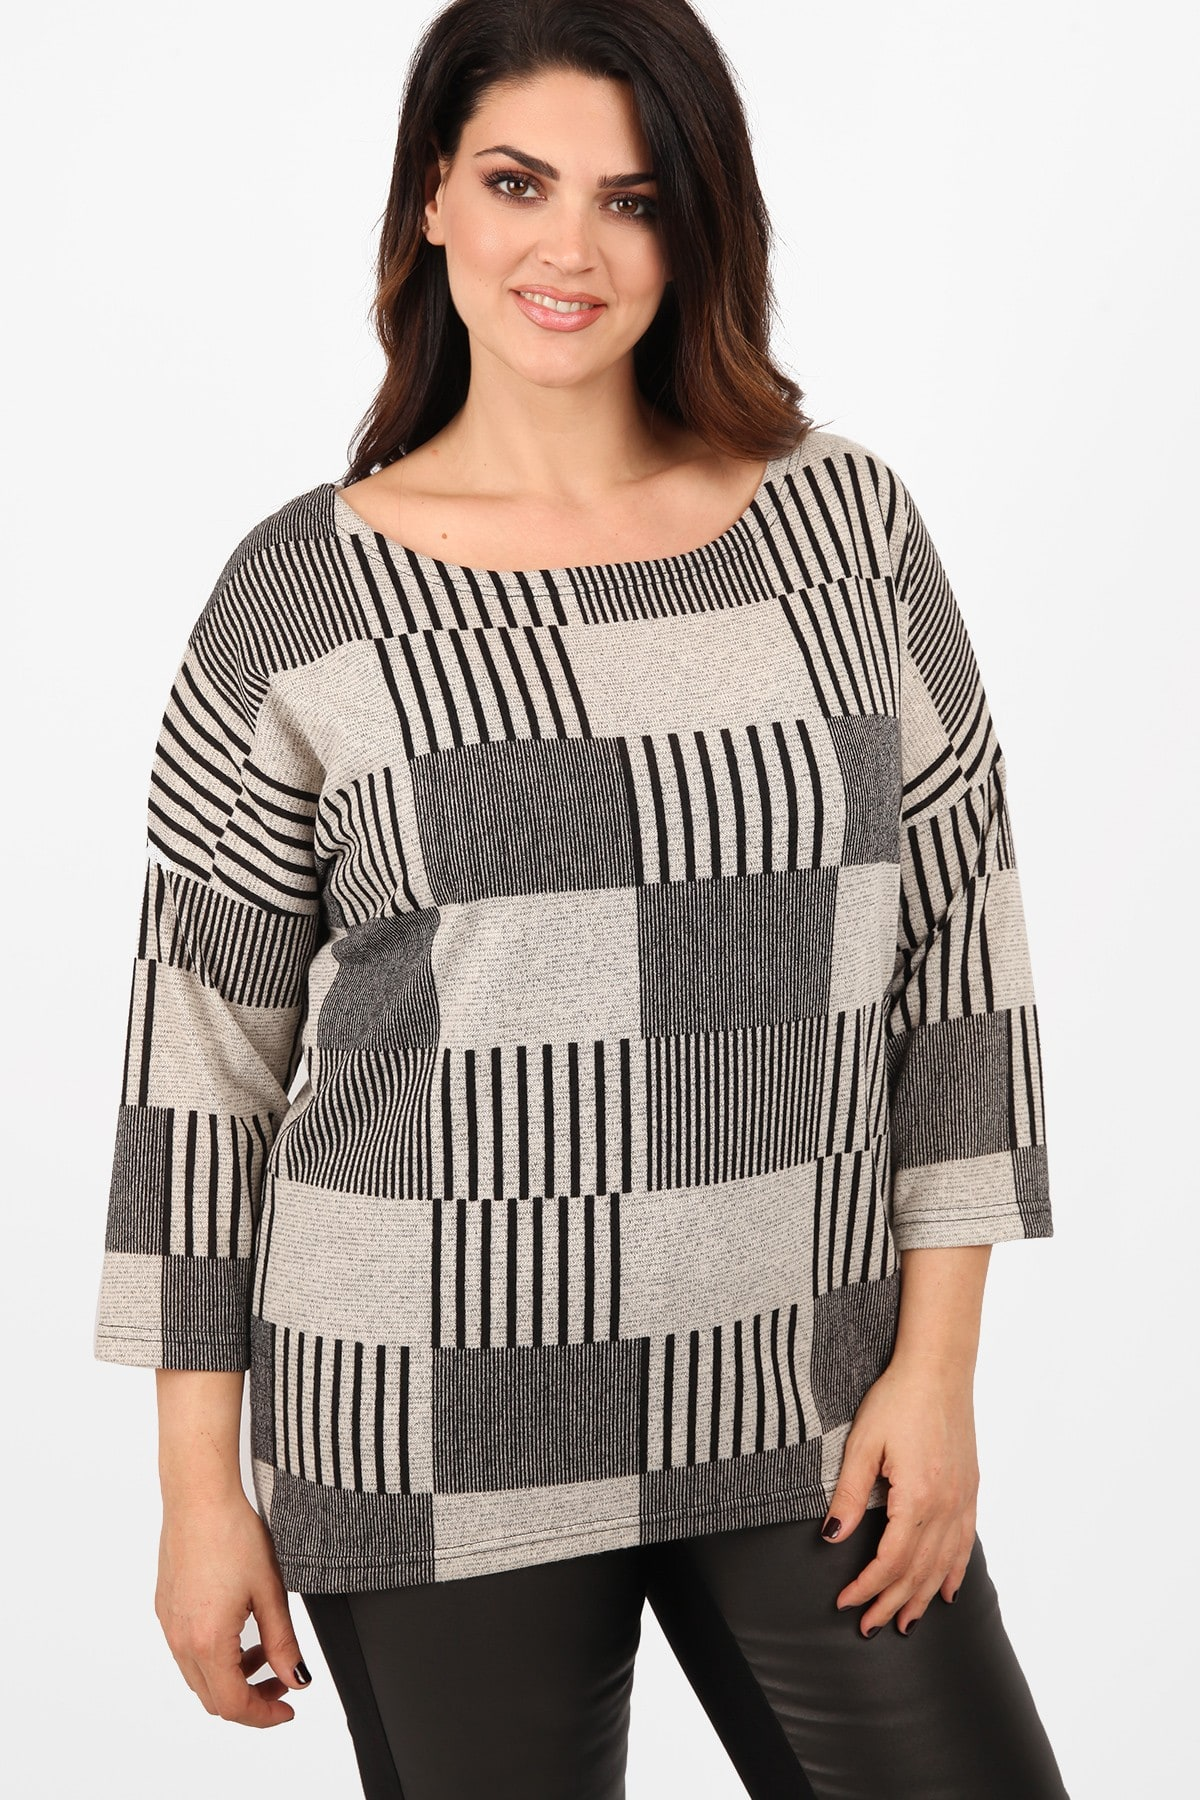 Knit blouse with geometrical patterns